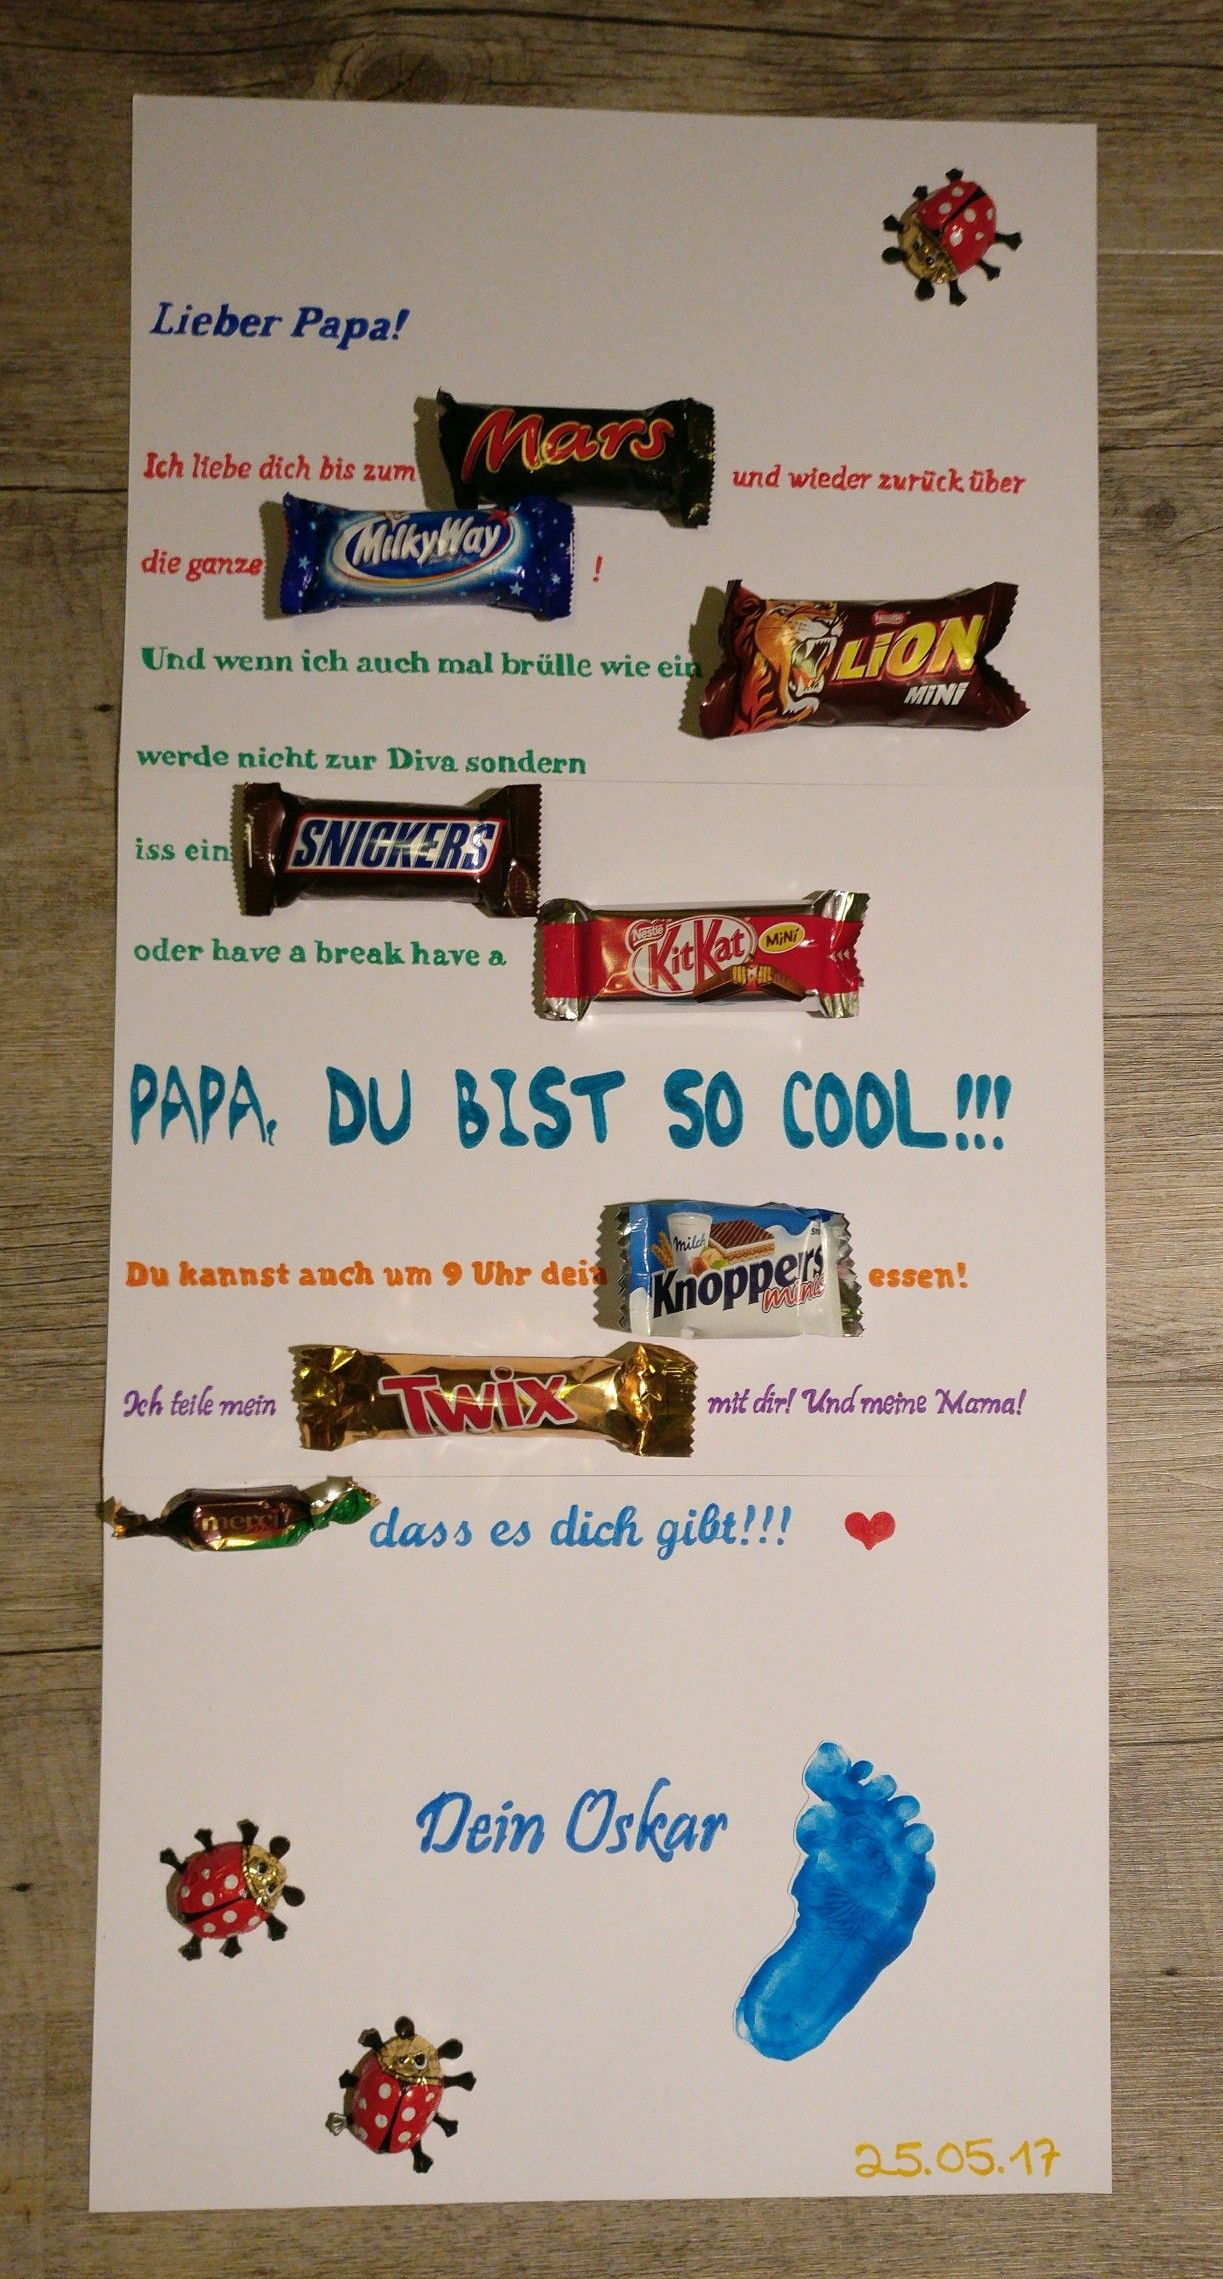 Vatertag Mars Milky Way Lion Snickers Kit Kat Knoppers Twix Merci Schokoriegel Plakat Father s Day Geschenk